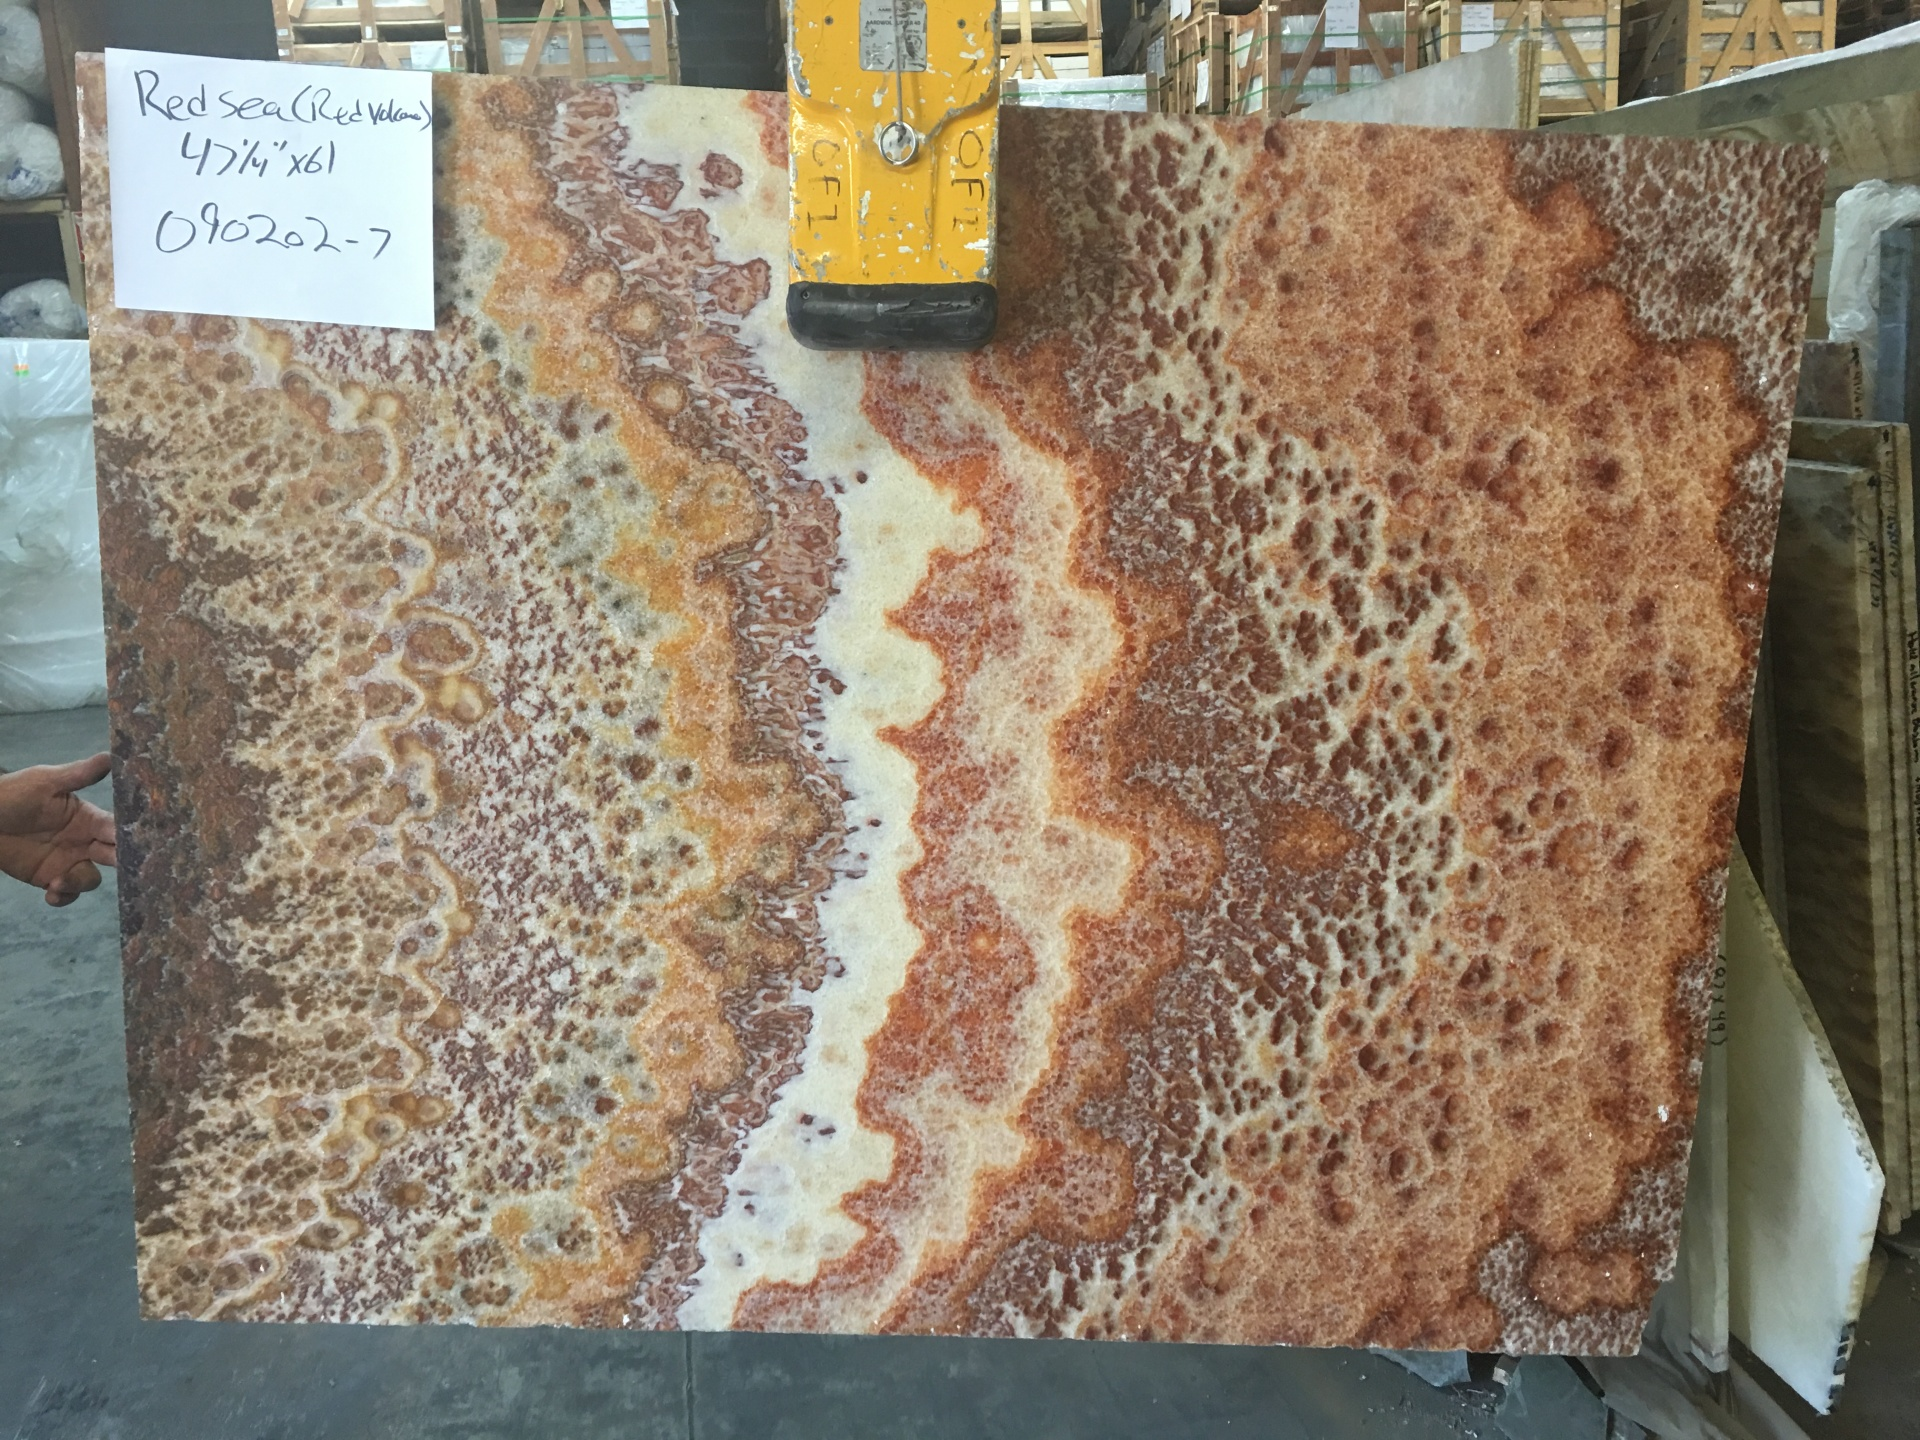 "Red Sea 3/4"" Polished Onyx Slabs Polished, Lot 090202-7"